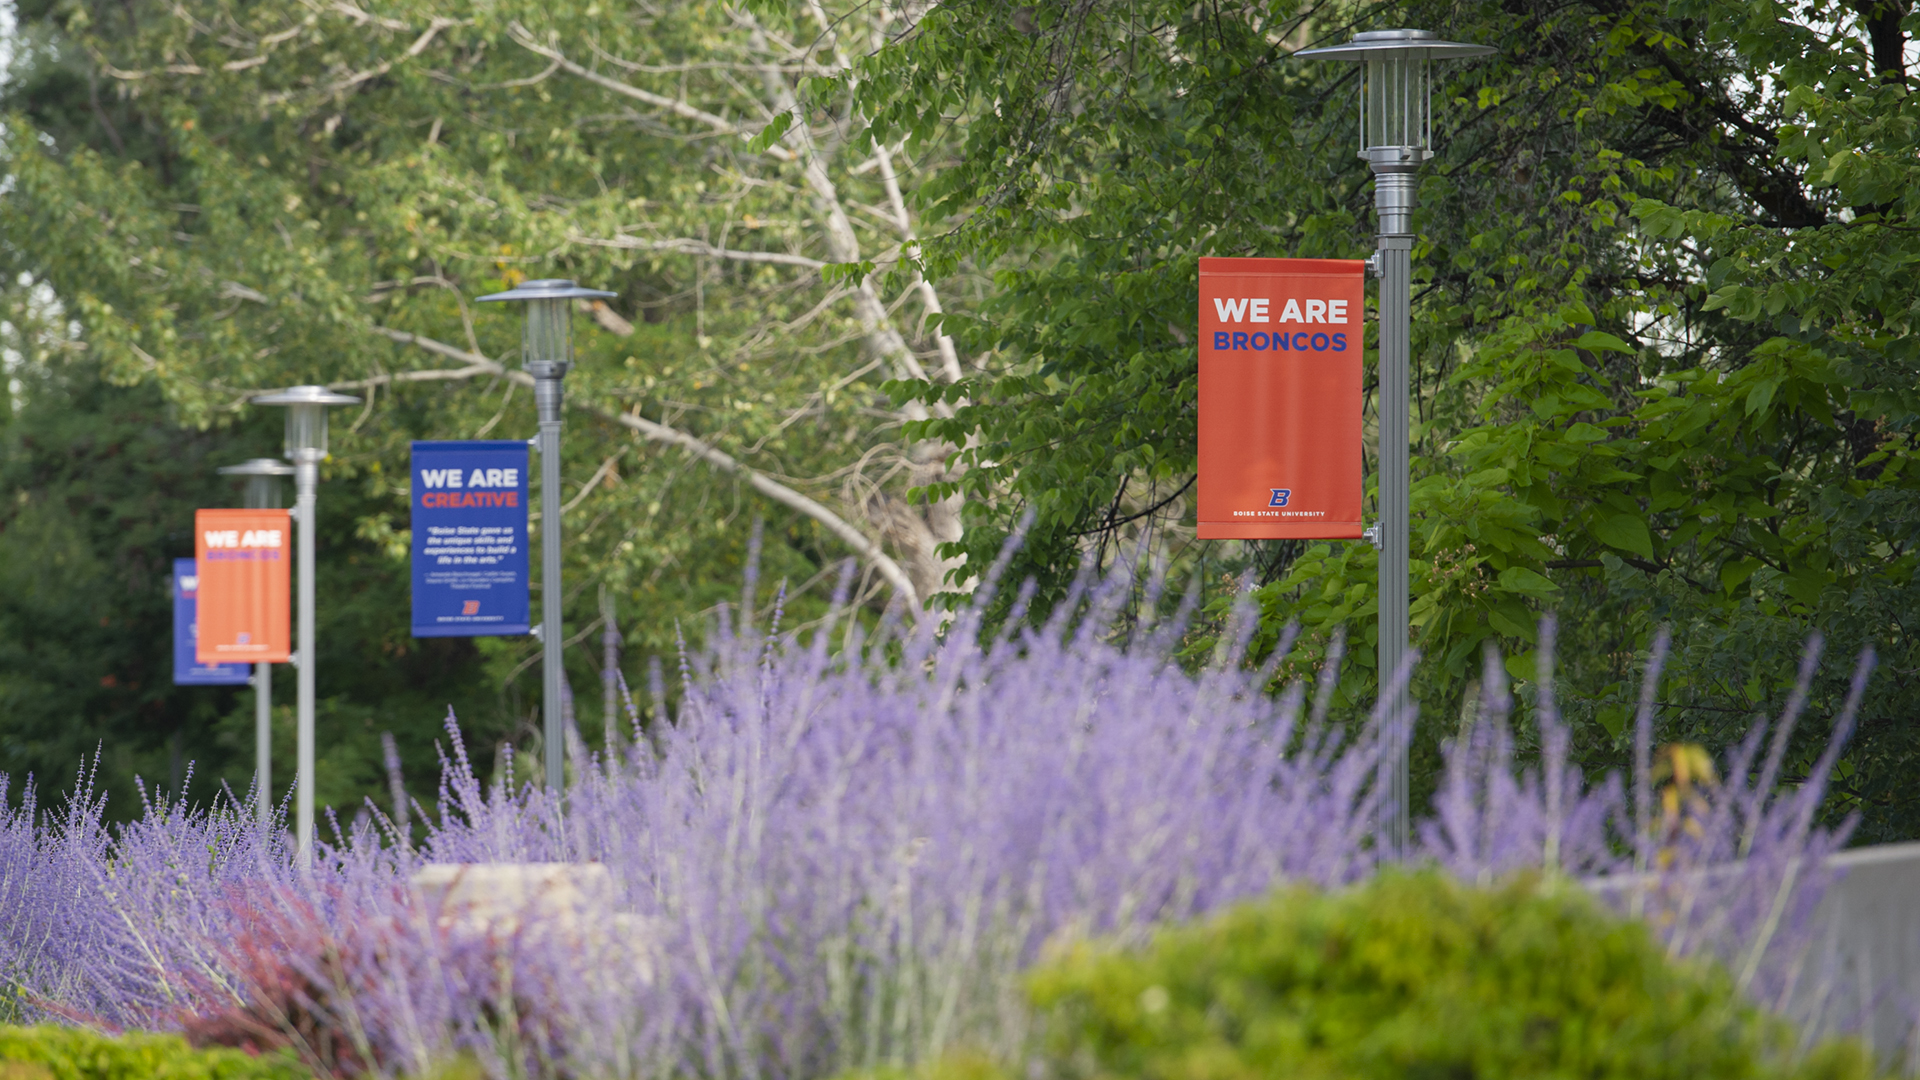 Campus Banners - We are Broncos, We are creative